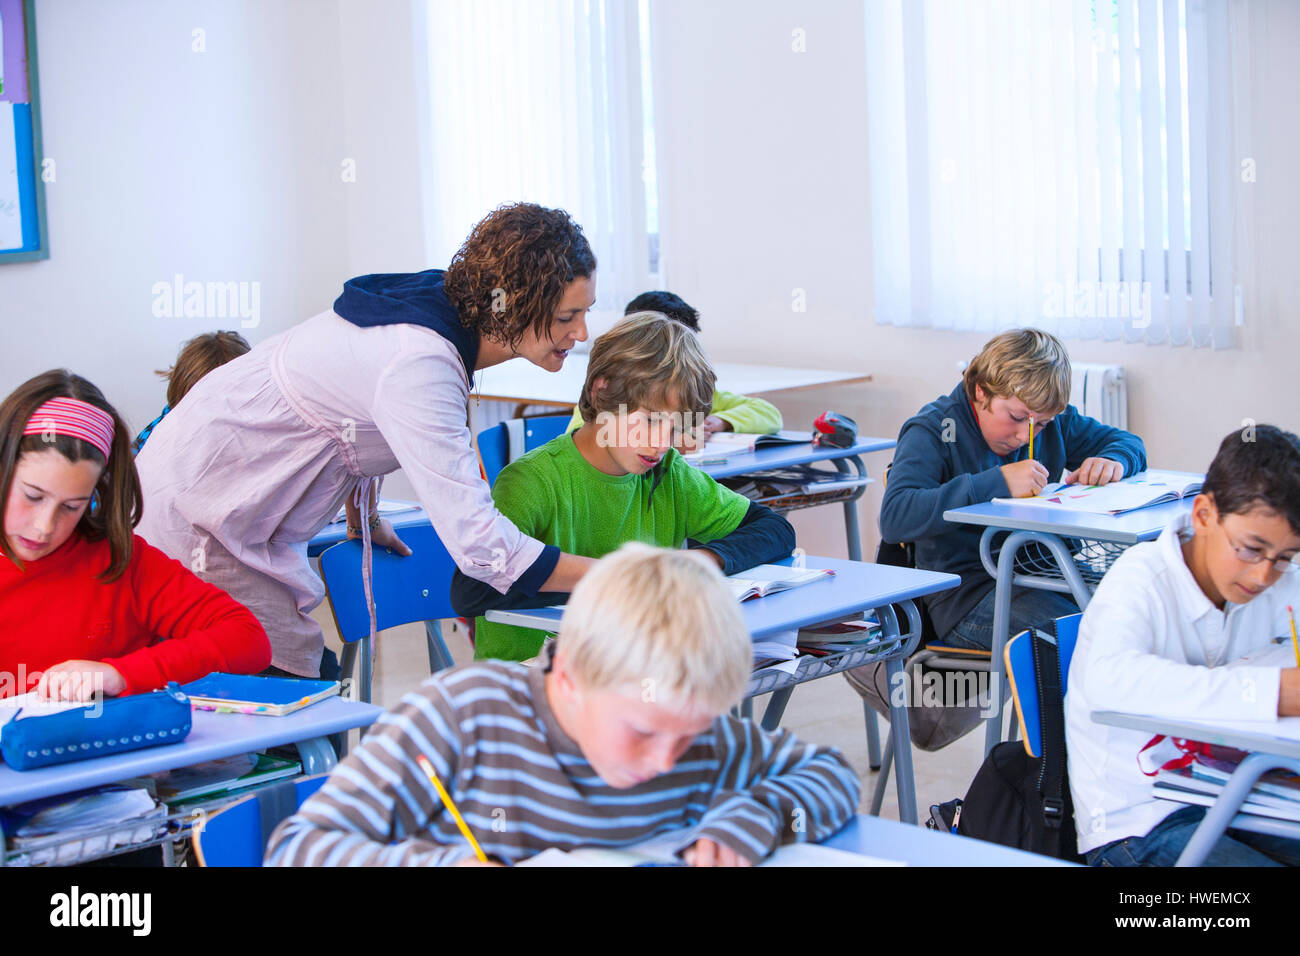 Teacher helping boy with problem in classroom - Stock Image